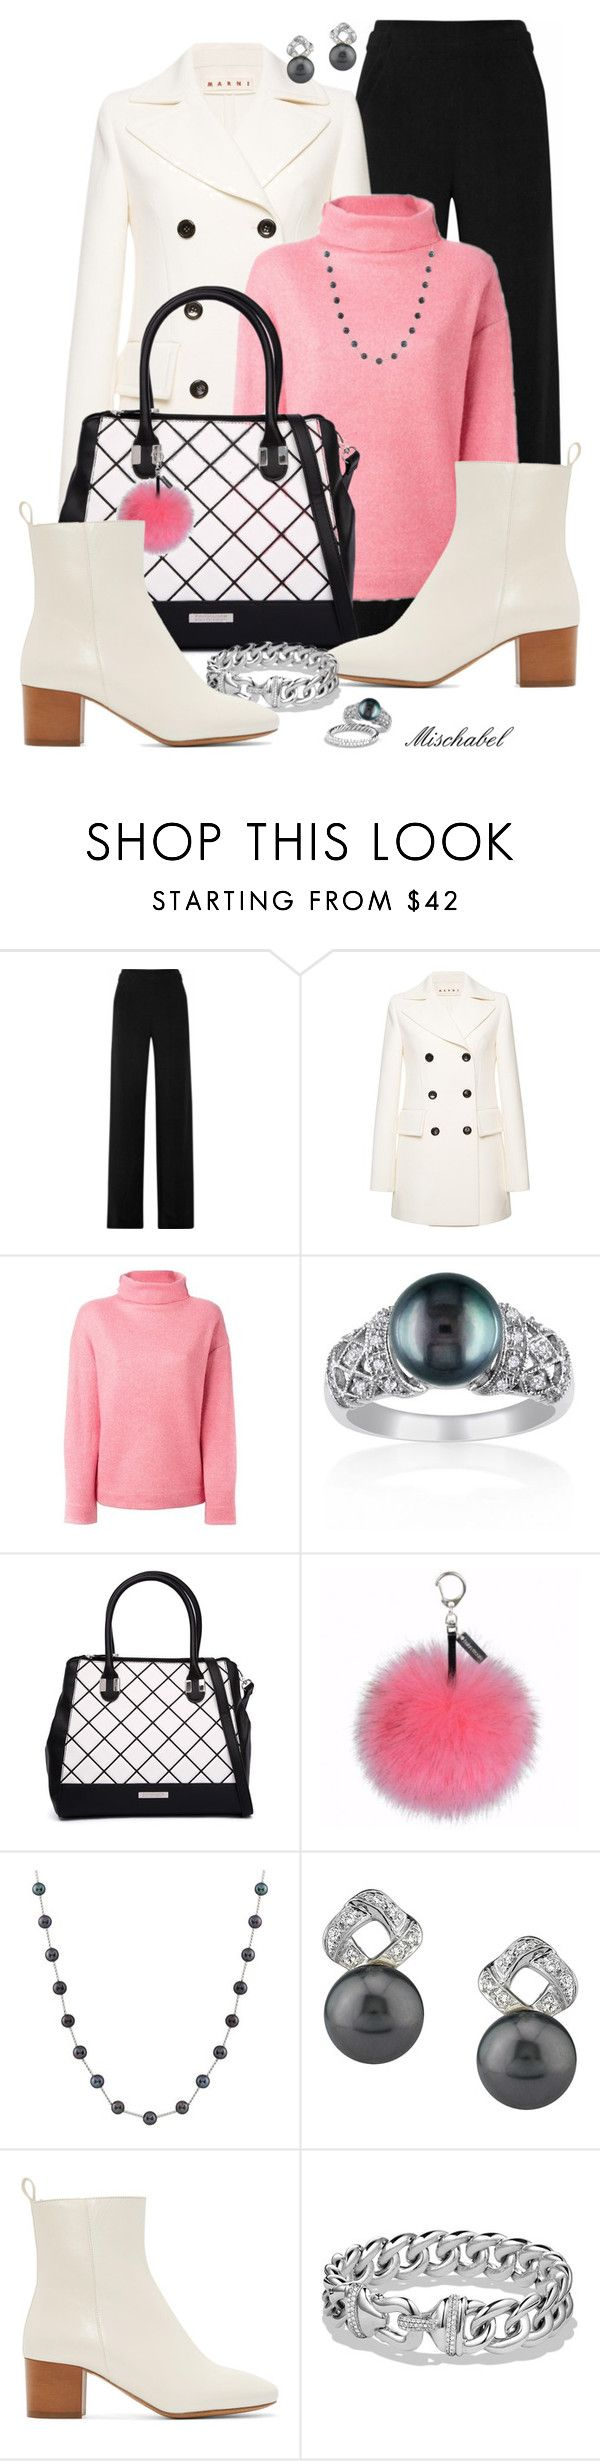 """It Girl - White Boots & Pom Pom Keyring (99)"" by mischabel ❤ liked on Polyvore featuring Proenza Schouler, Marni, Étoile Isabel Marant, Belk & Co., Kardashian Kollection, Helen Moore, Splendid Pearls, Isabel Marant, David Yurman and women's clothing"